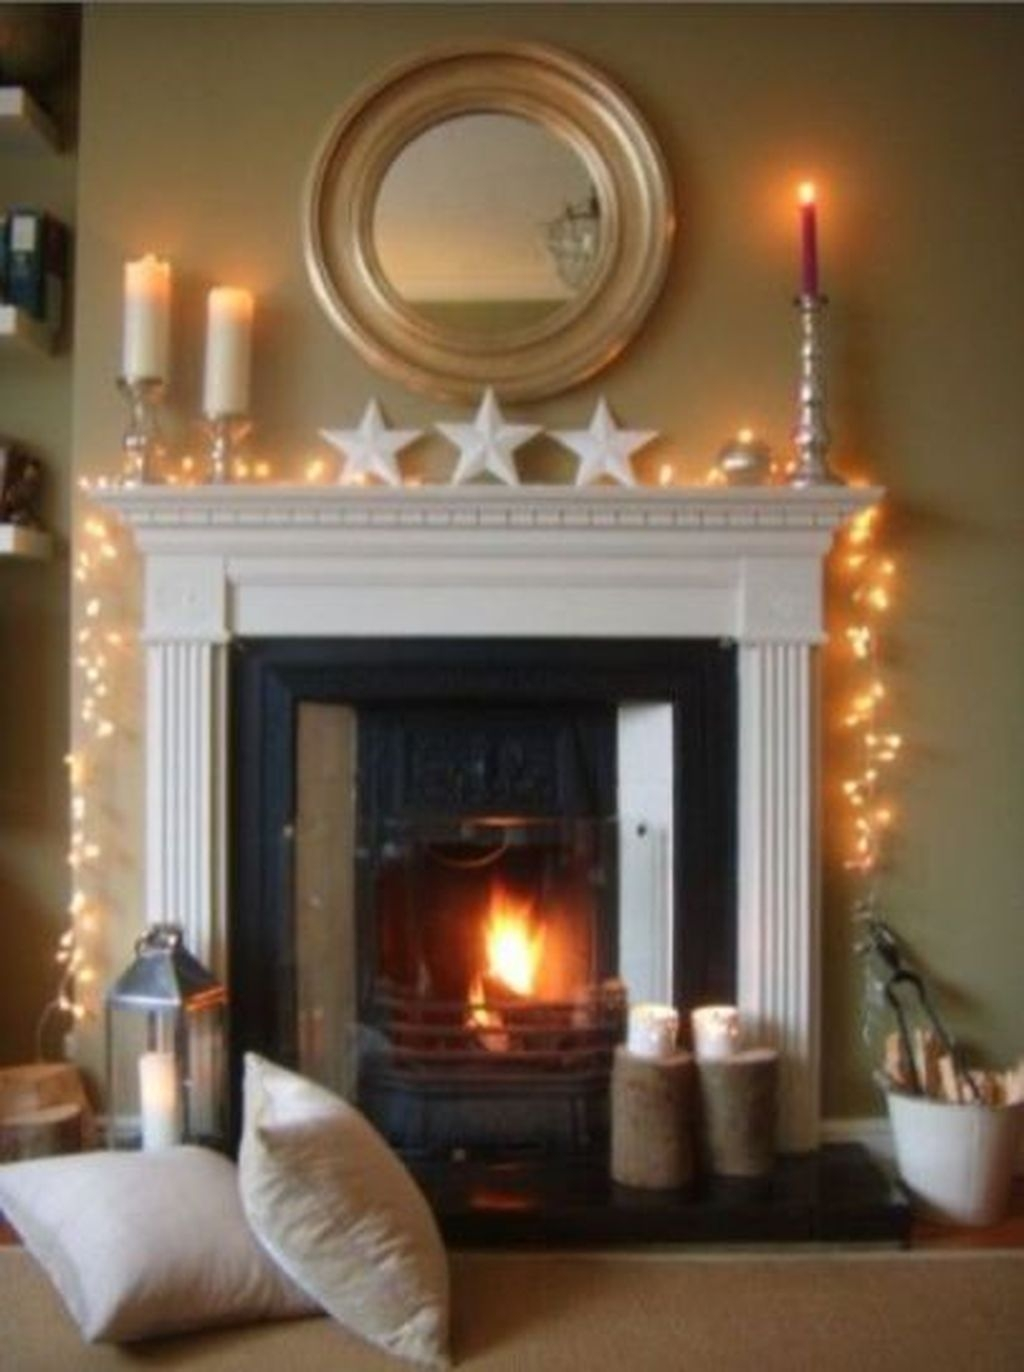 The Best Christmas Fireplace Decoration For Any Home Model 29